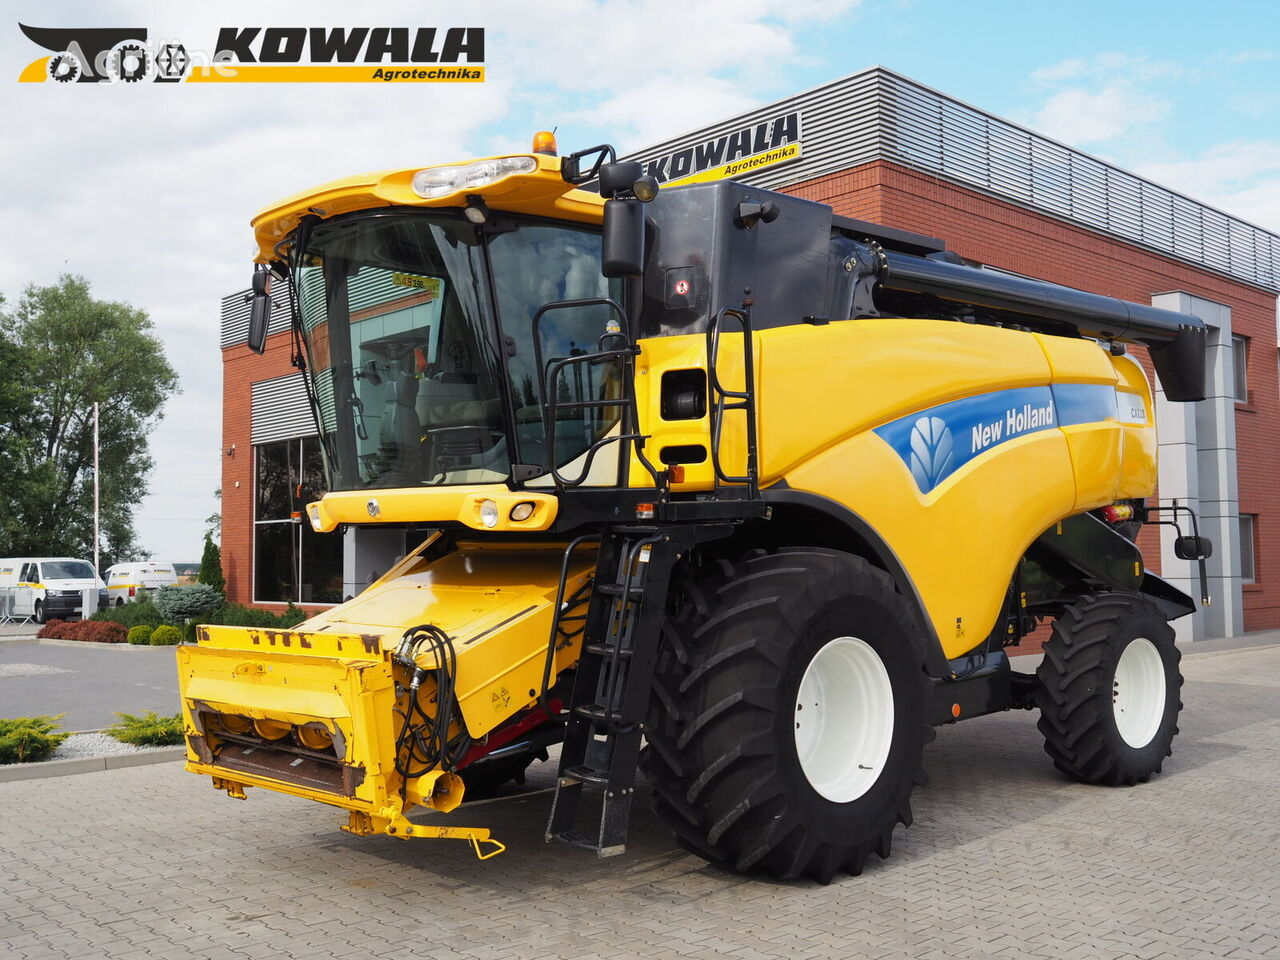 NEW HOLLAND CX 820 + BISO VX 650 biçerdöver